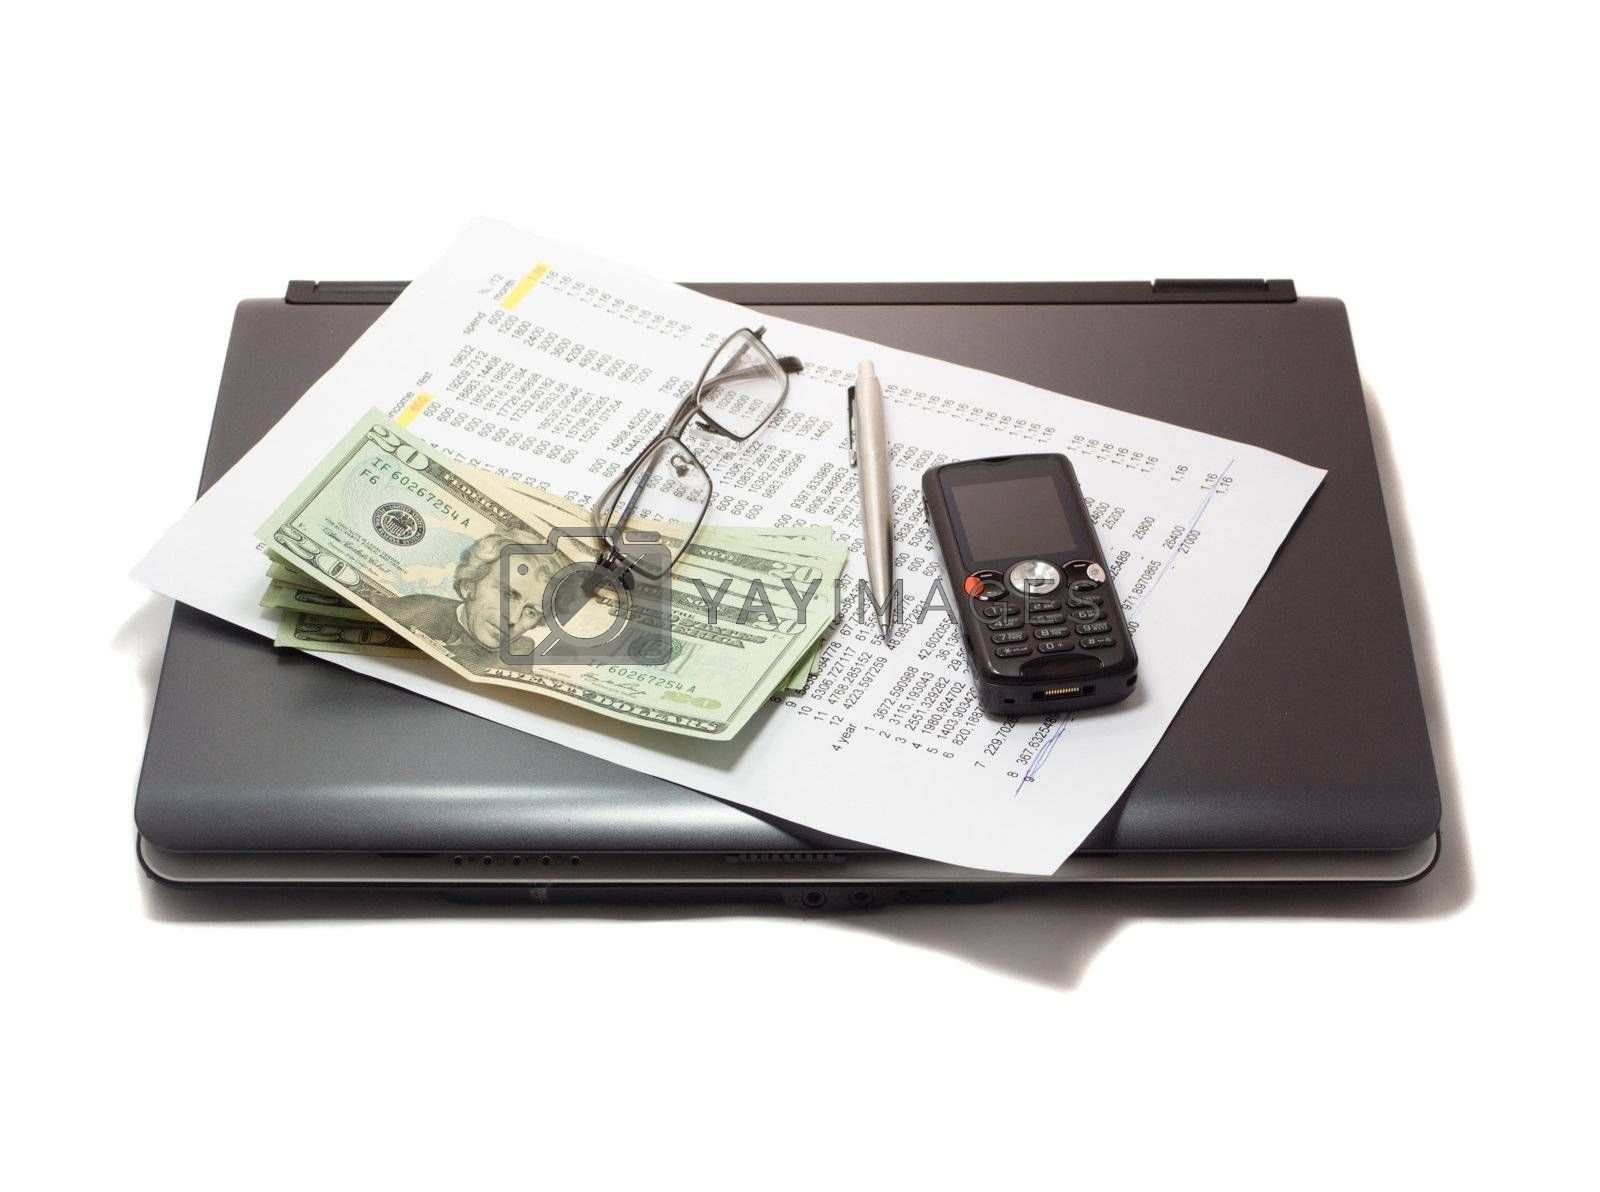 Closed notebook and credit history list with money, glass, pen and mobile phone